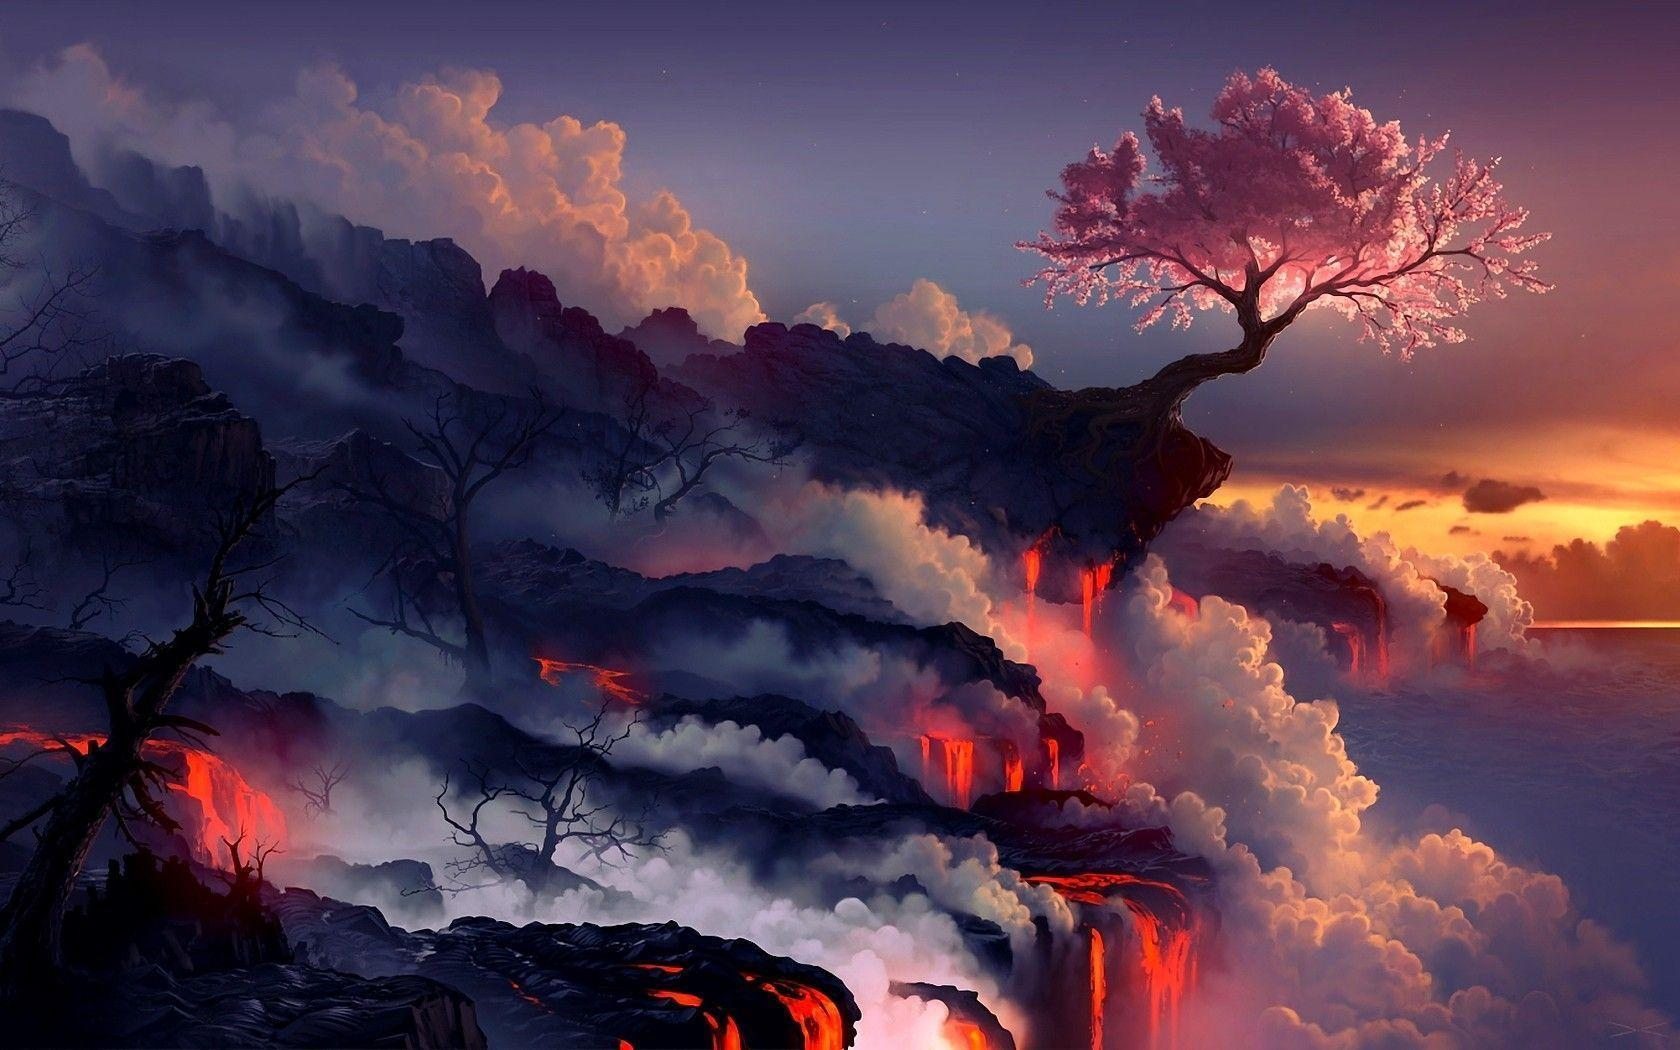 Trippy landscape wallpapers wallpaper cave - Trippy nature wallpaper ...